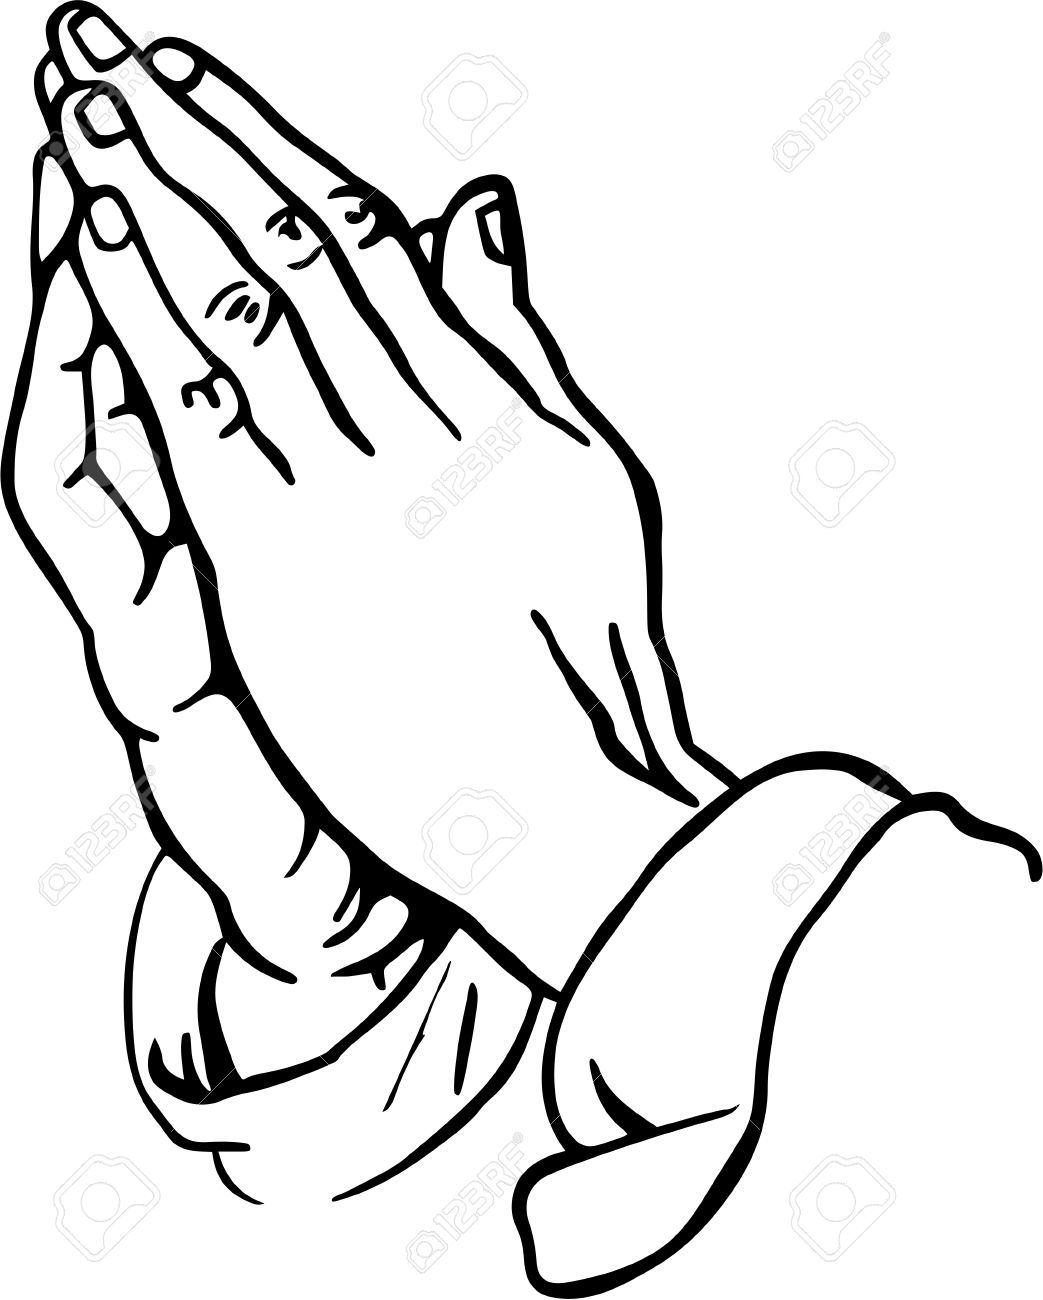 praying hands clipart stock photo, picture and royalty free image